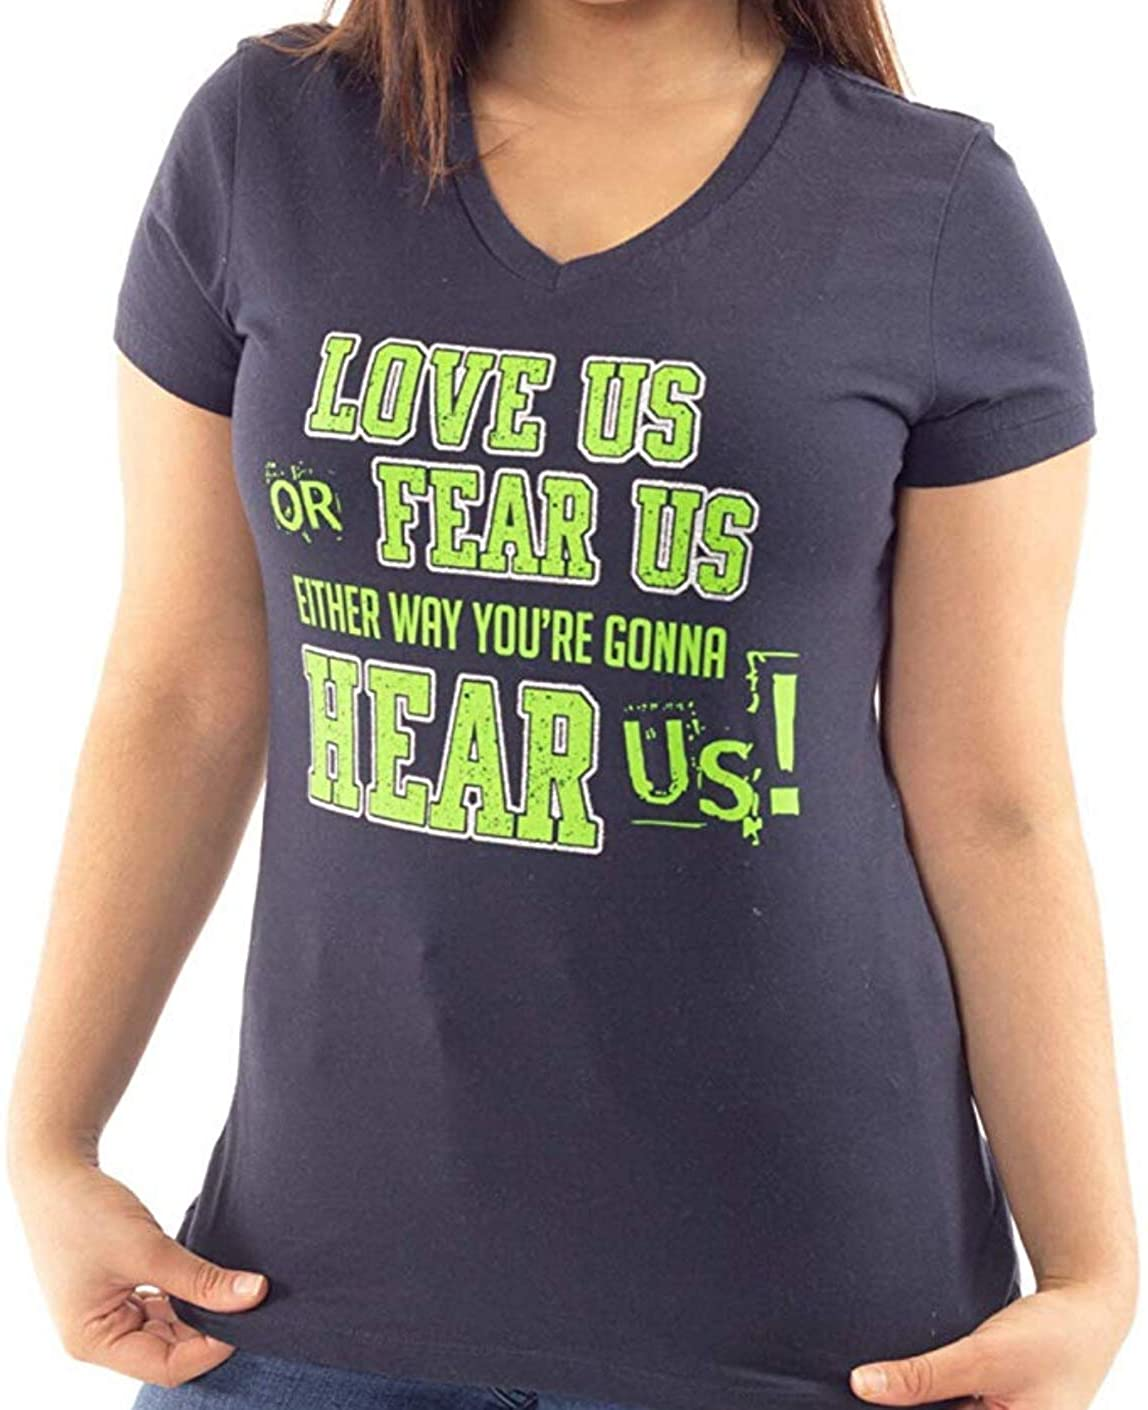 Lady 12 Womens Tee Shirt Graphic Love Us or Fear Us Seattle Football Design with Glitter Accents   Plus Sizes (XS-4X)